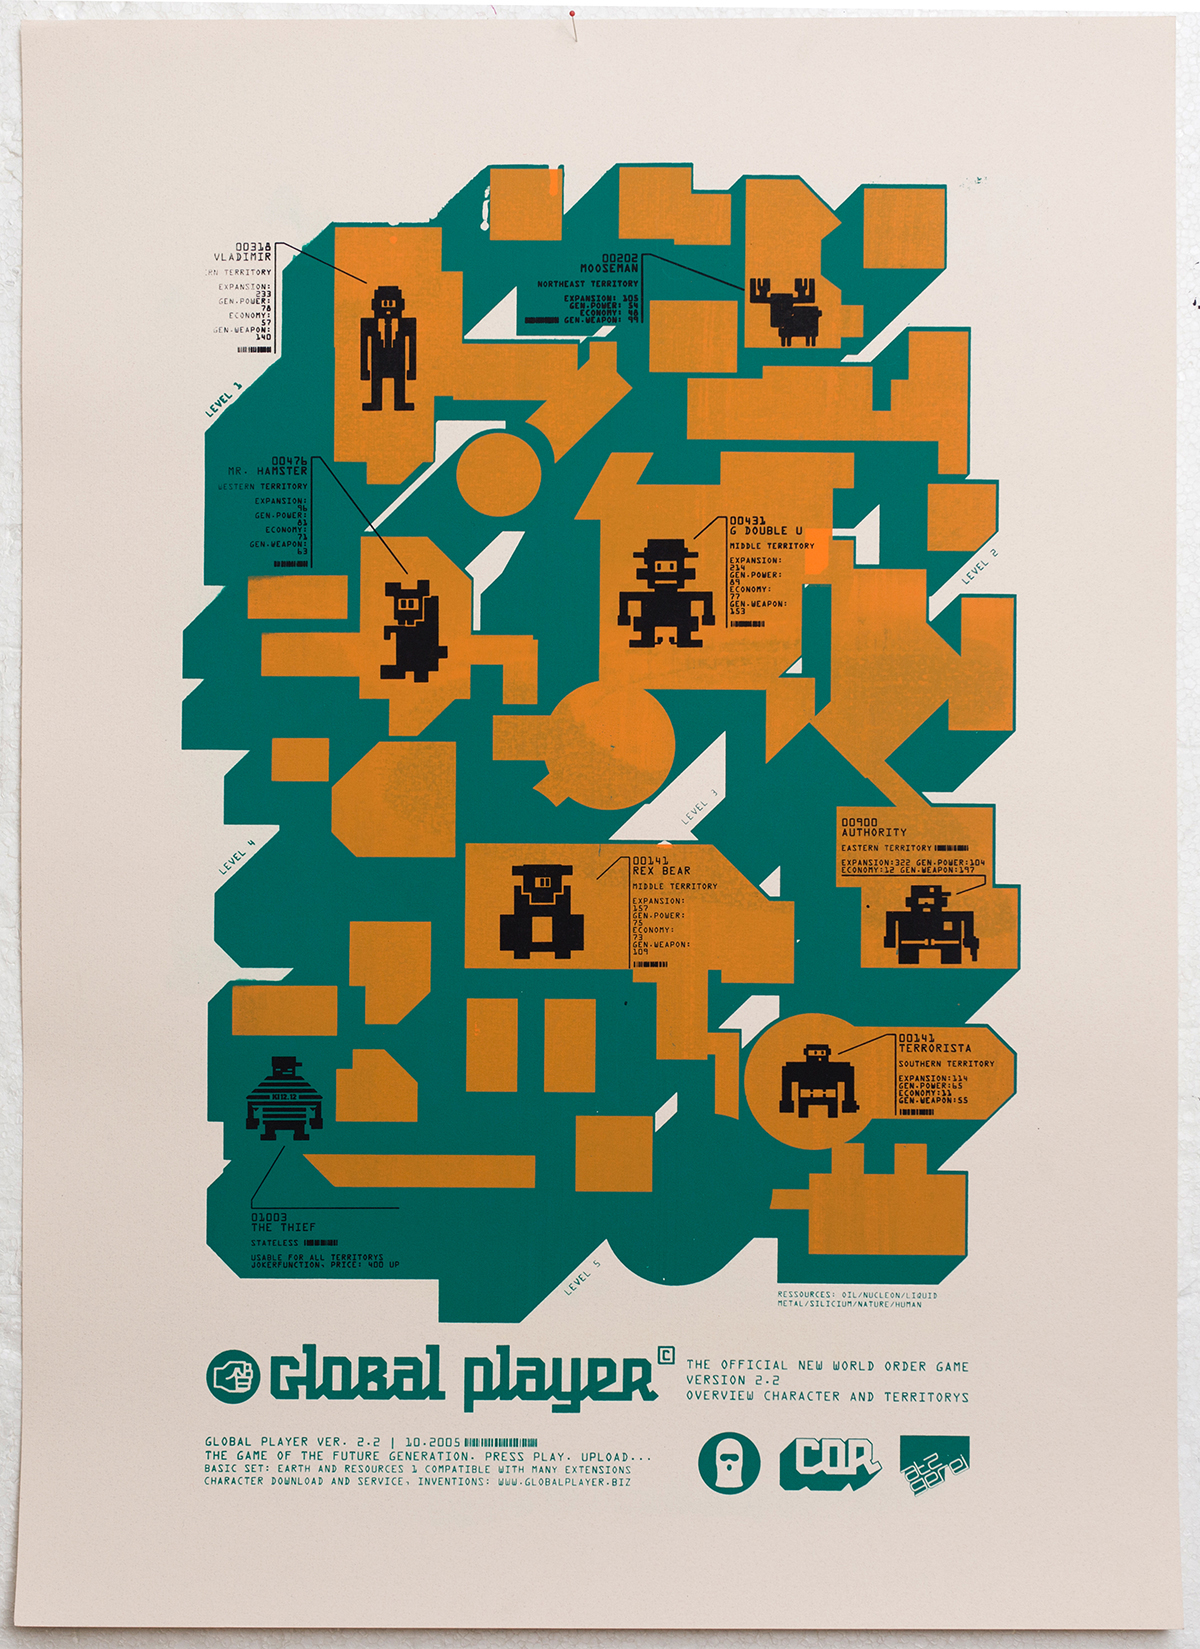 2005_global player v1